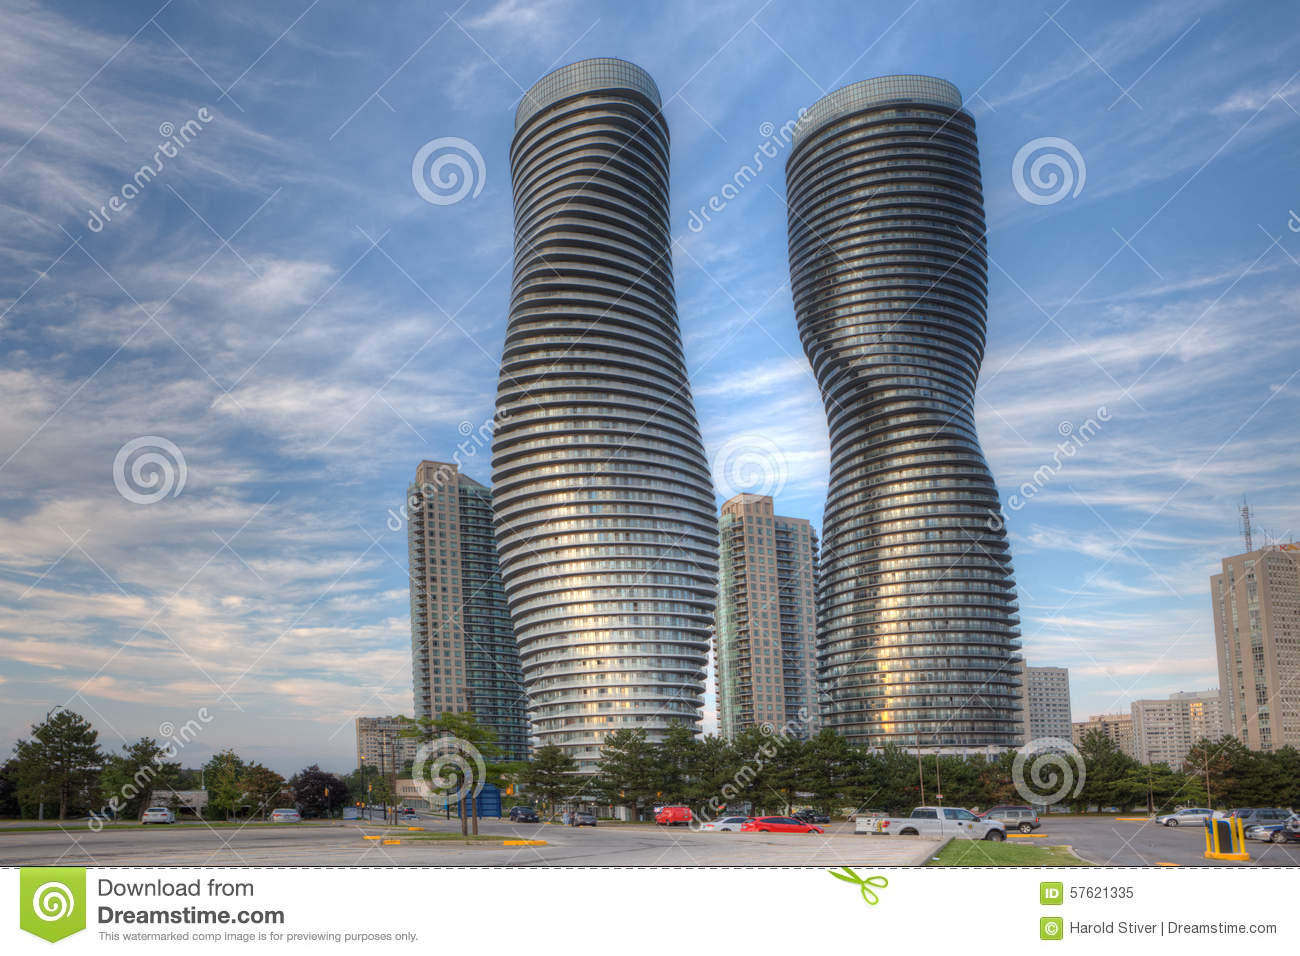 530parkcondo in addition Editorial Photo Flooded Building Trees Sunset Rishon Lezion Israel September Light Flooding Modern Residential Kiryat Kramim Image46024391 besides Editorial Image Absolute World Futuristic Condominiums Found Mississauga Canada  monly Known As Marilyn Monroe Buildings Image57621335 furthermore The Privileged View Of The Luxury Hyde Apartment Building In Sydney Australia as well Tsukuba. on condominium exterior